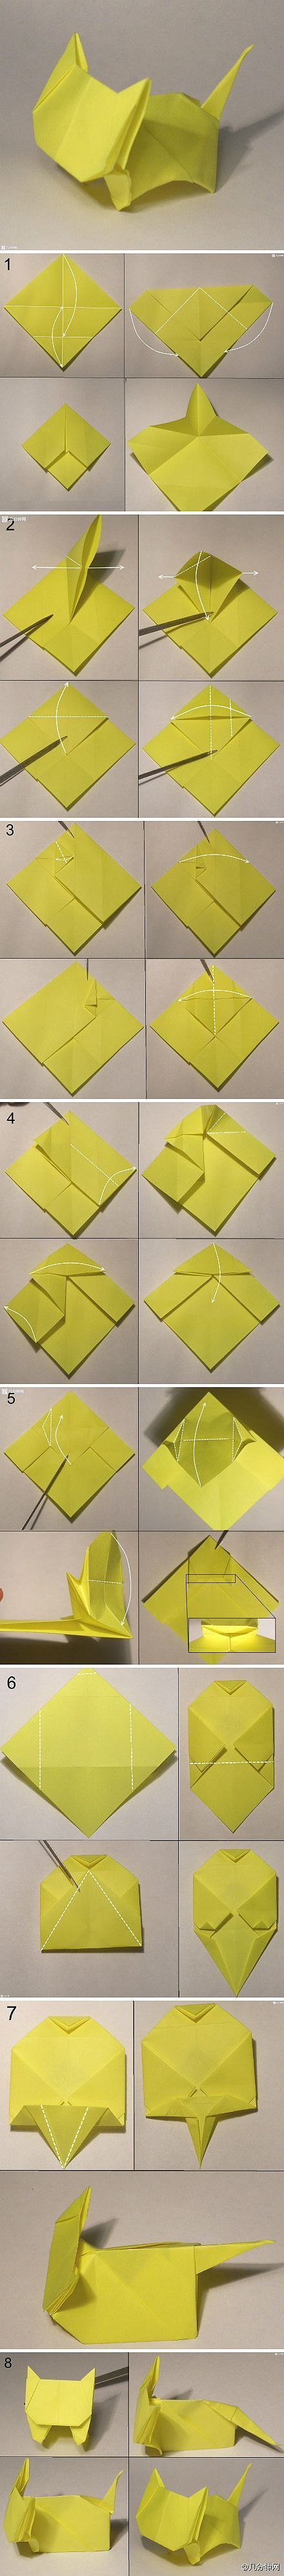 Origami Little Cute Cat: